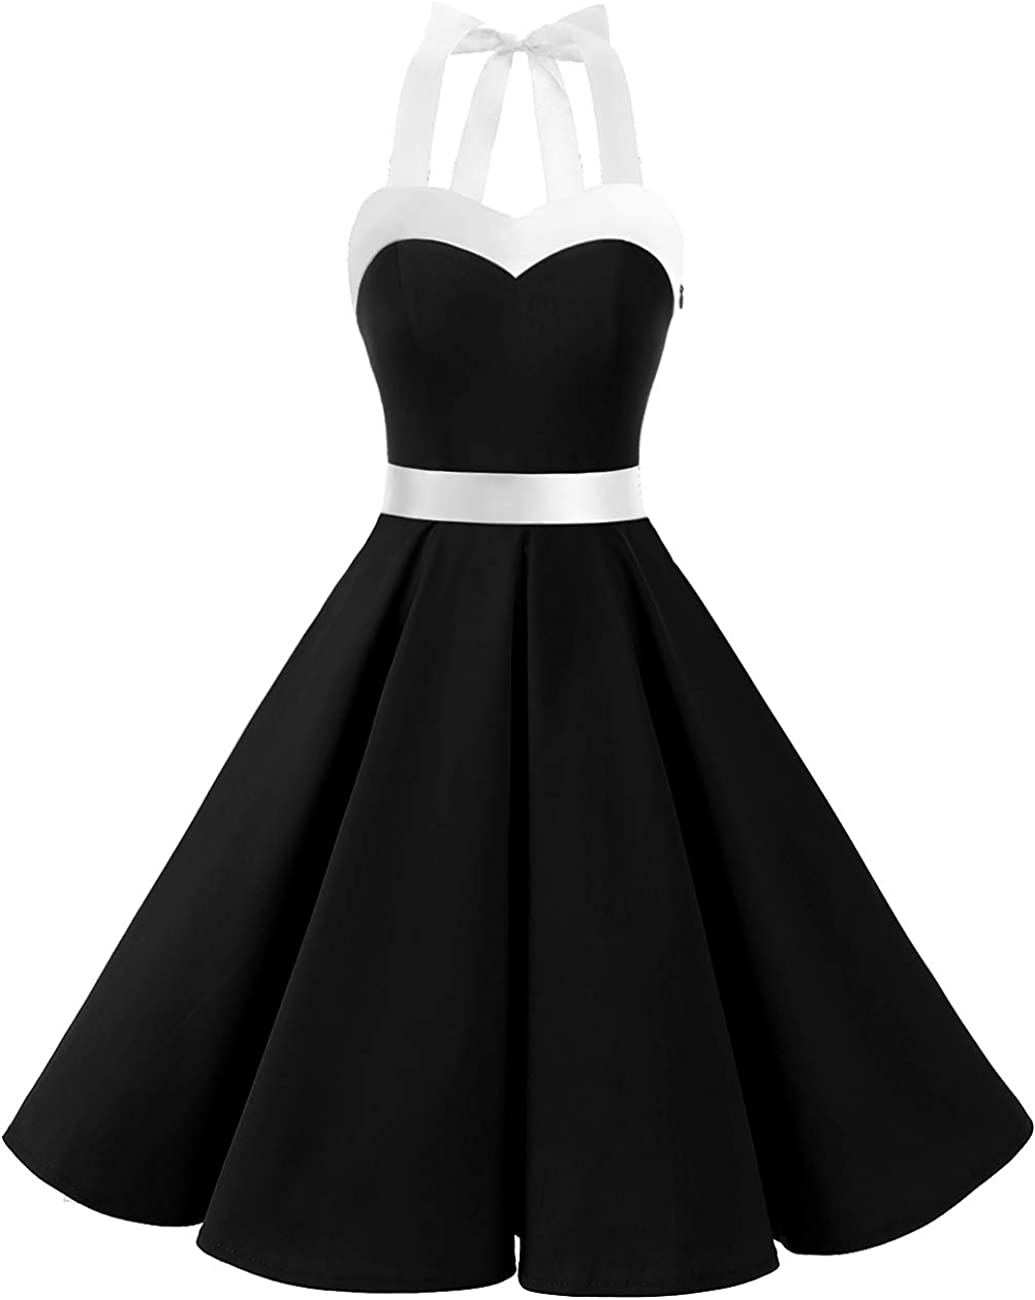 TALLA S. Dresstells® Halter 50s Rockabilly Polka Dots Audrey Dress Retro Cocktail Dress Black White S